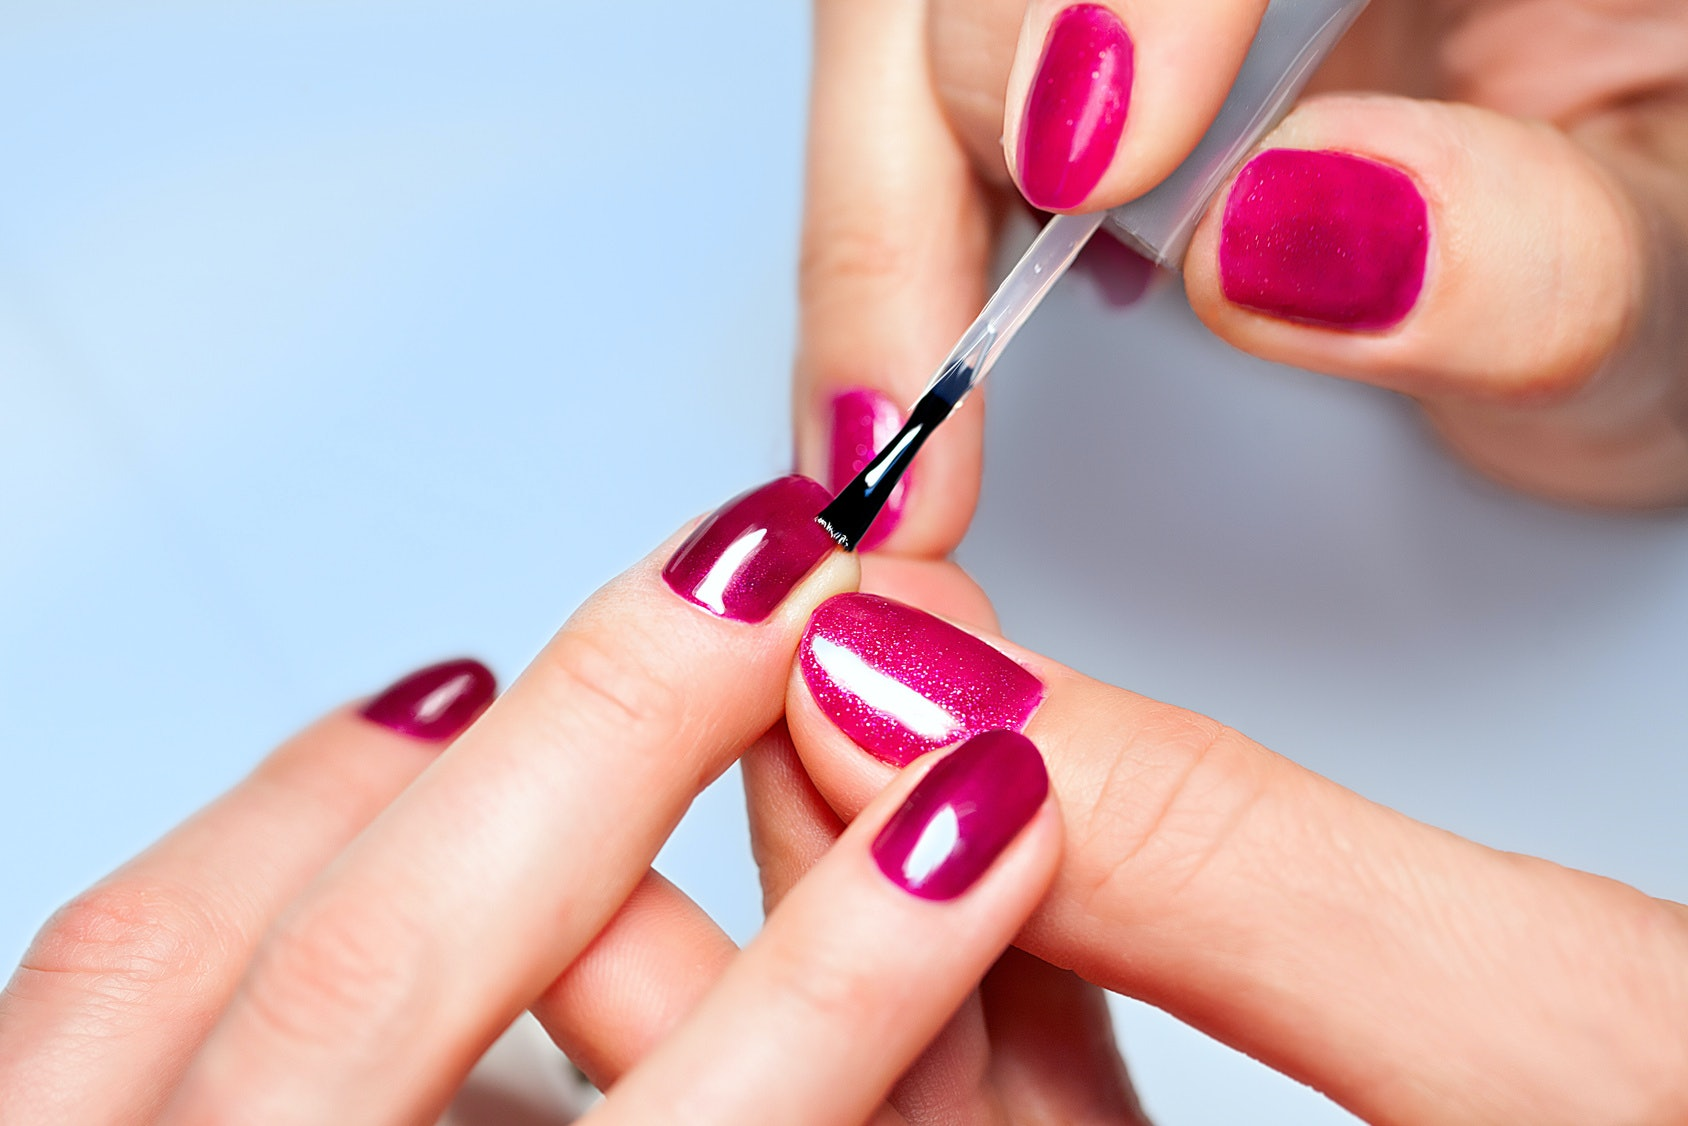 15 Best Non-Toxic Nail Polish Brands 15 Best Non-Toxic Nail Polish Brands new pics